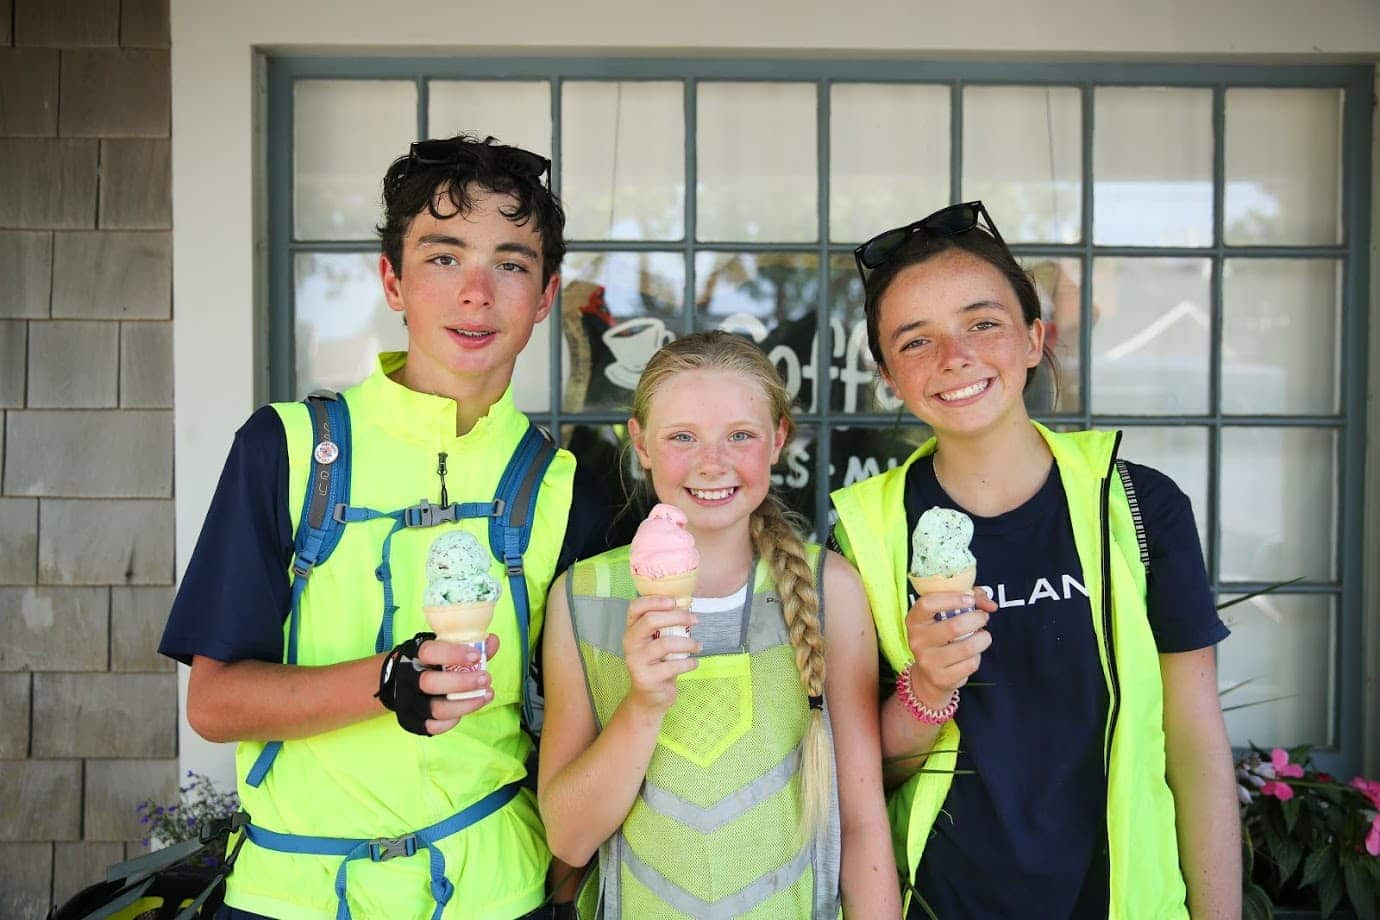 Campers take a pit stop for ice cream on their bike trip this summer